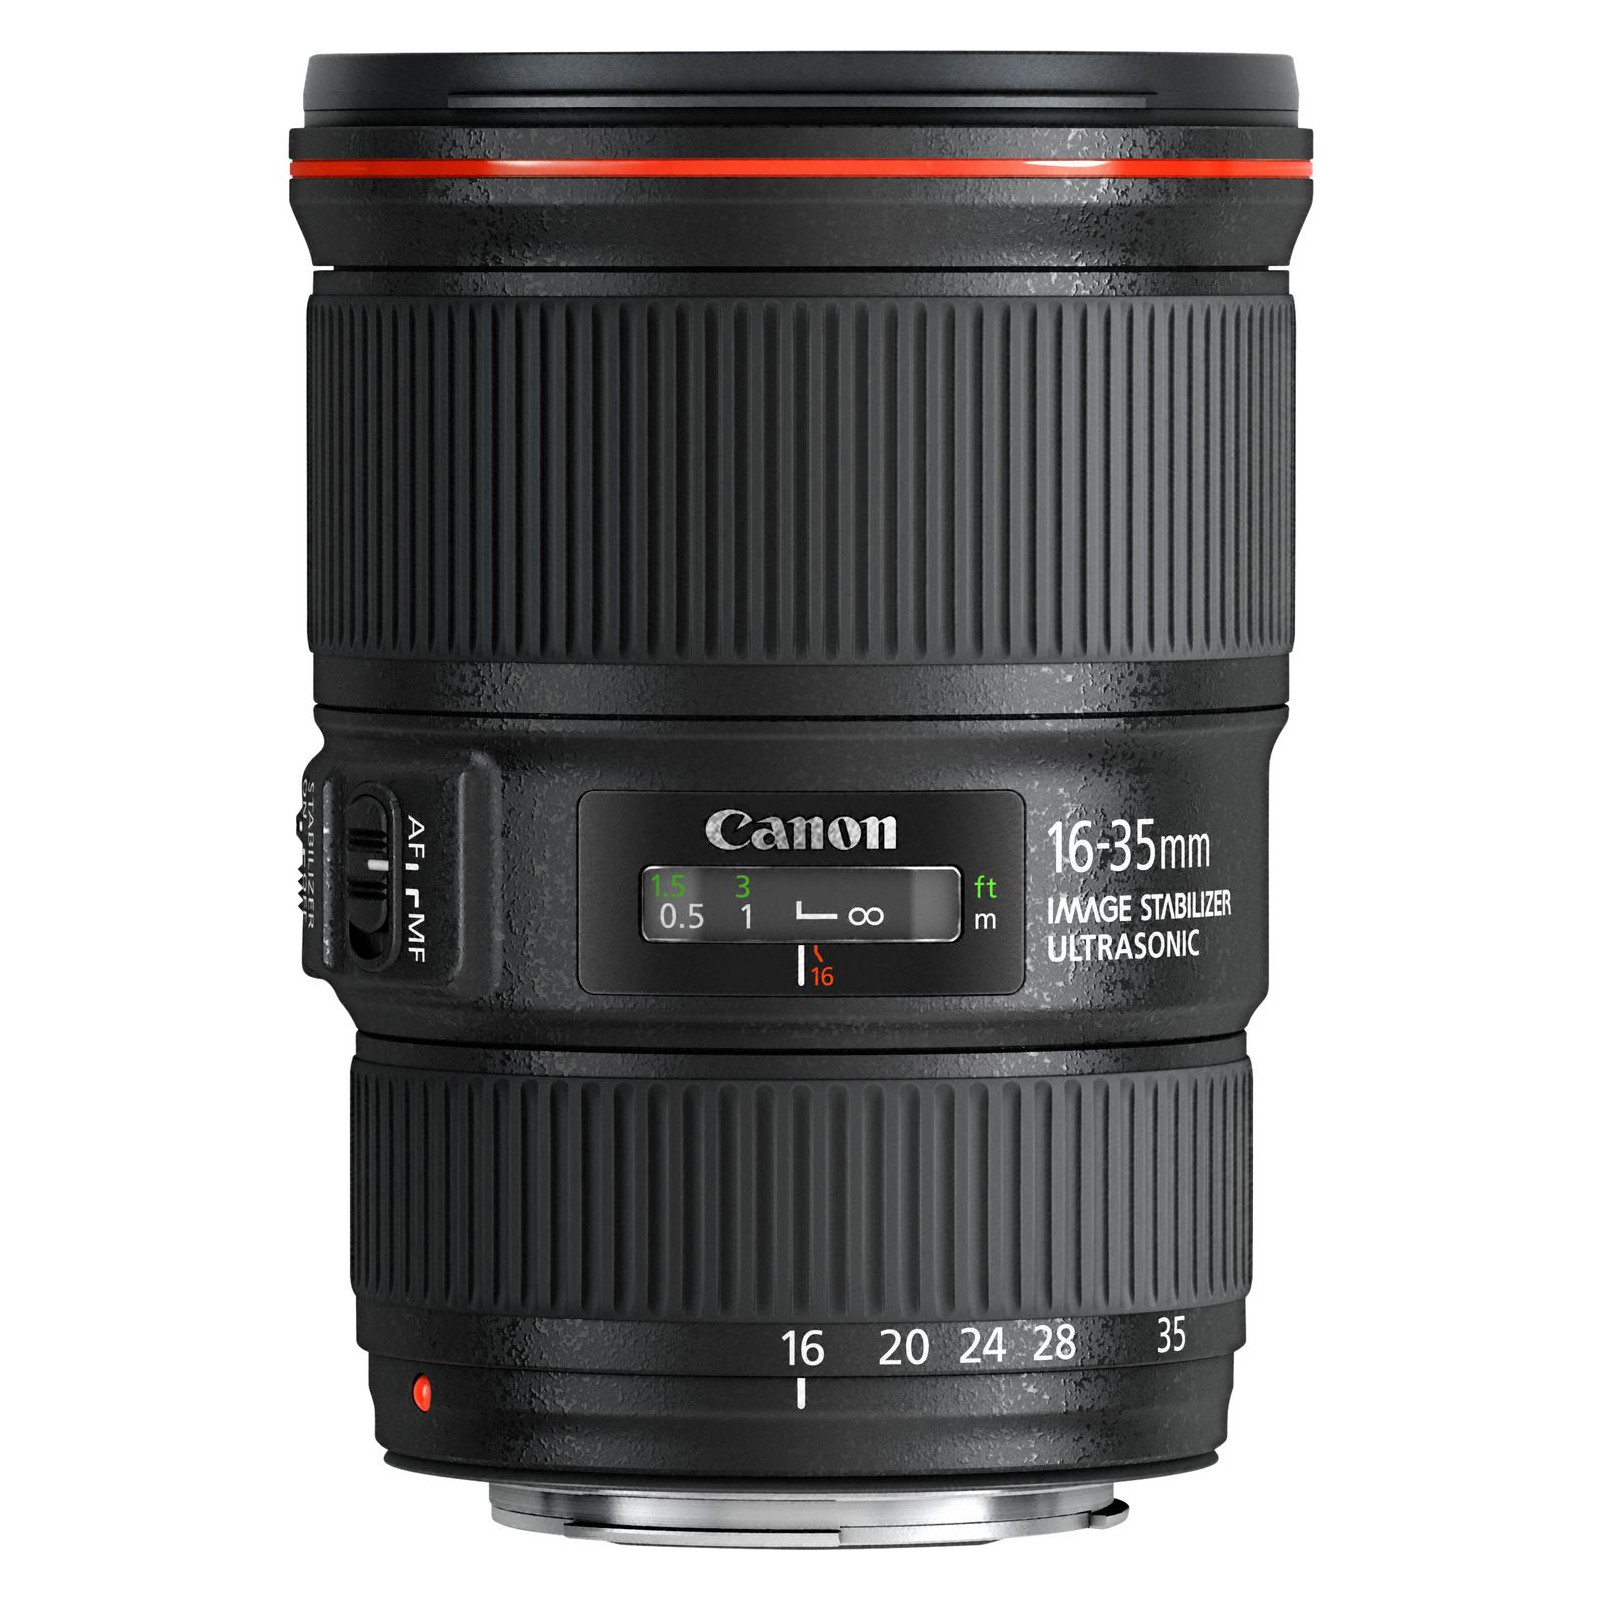 Objectif appareil photo Canon EF 16-35mm f/4L IS USM Zoom ultra grand-angle stabilisé